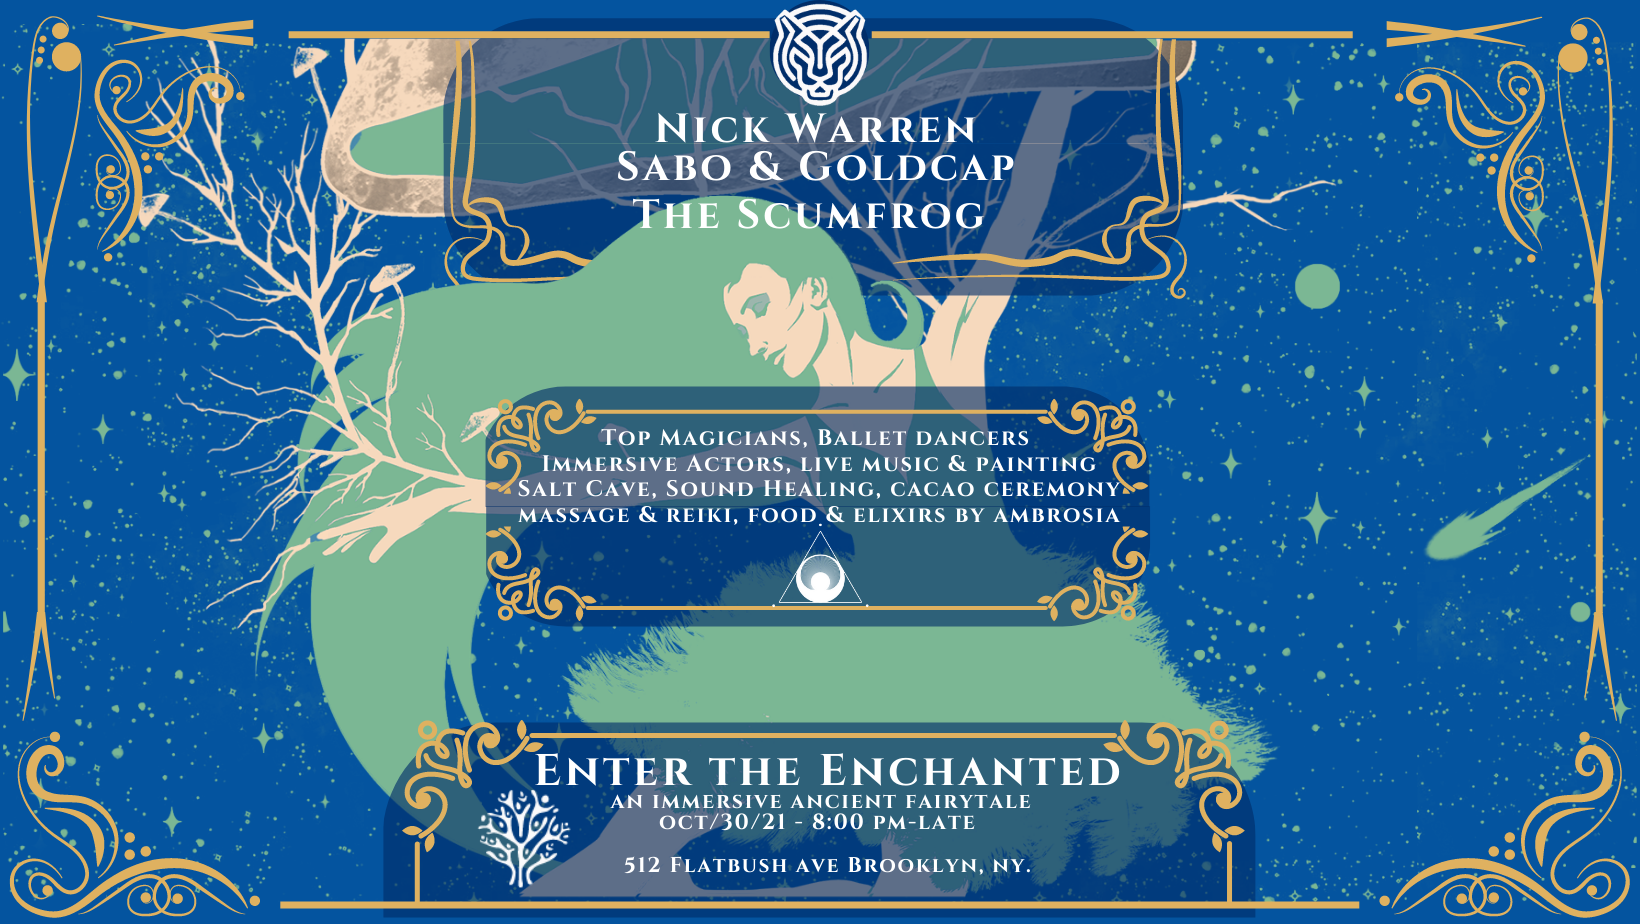 Enter The Enchanted: An Immersive Ancient Fairytale